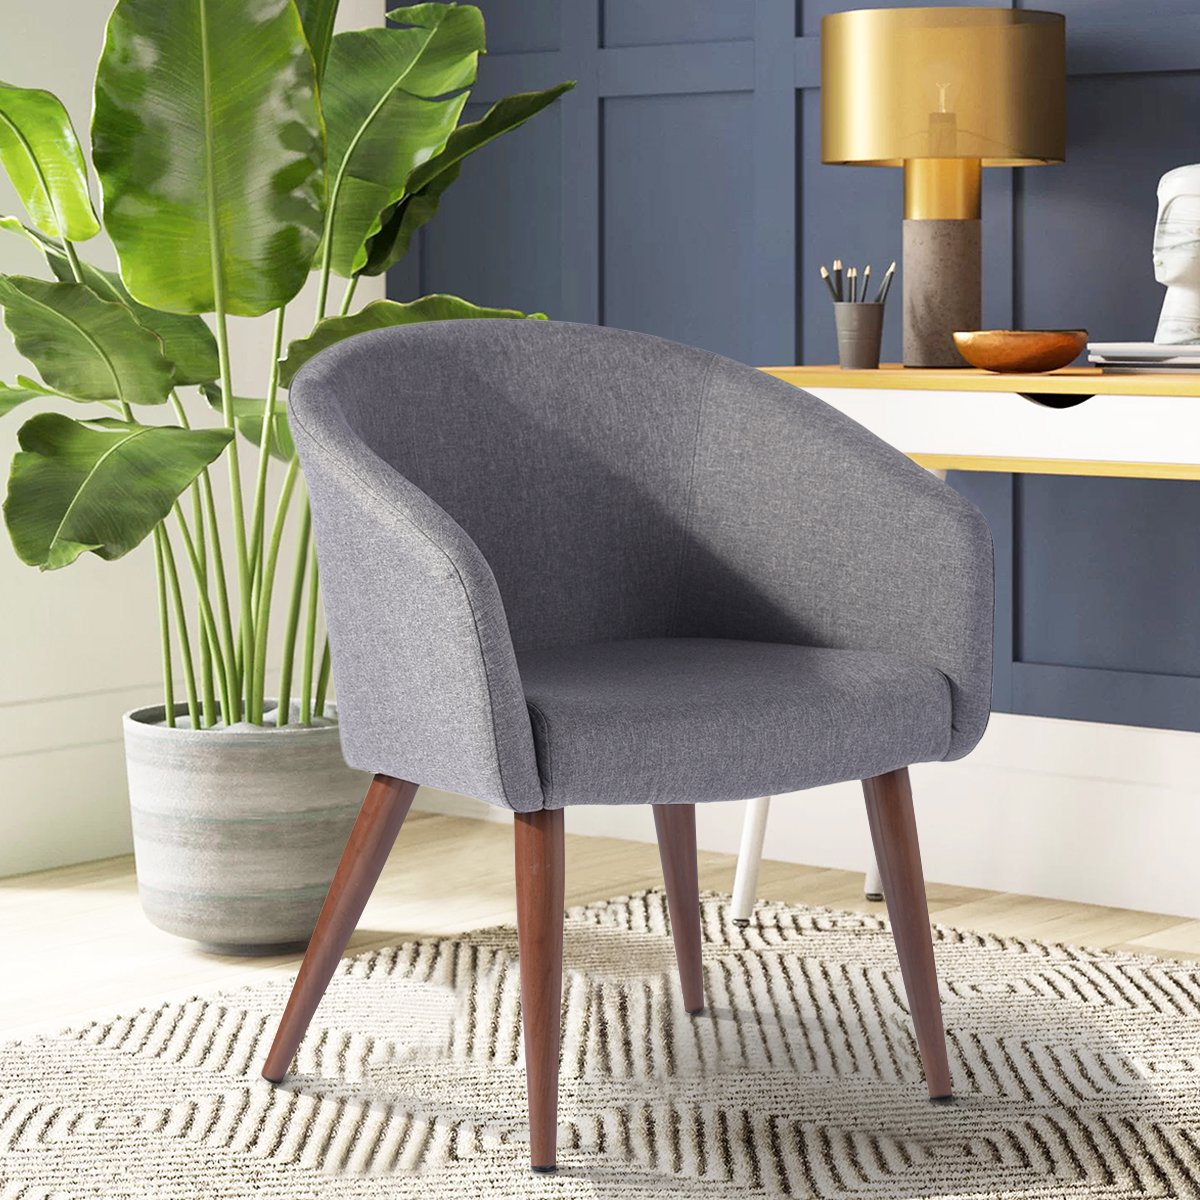 Furniture R Leisure Side Chairs Fabric Seat Back For Dining And Living Room Grey Walmart Canada